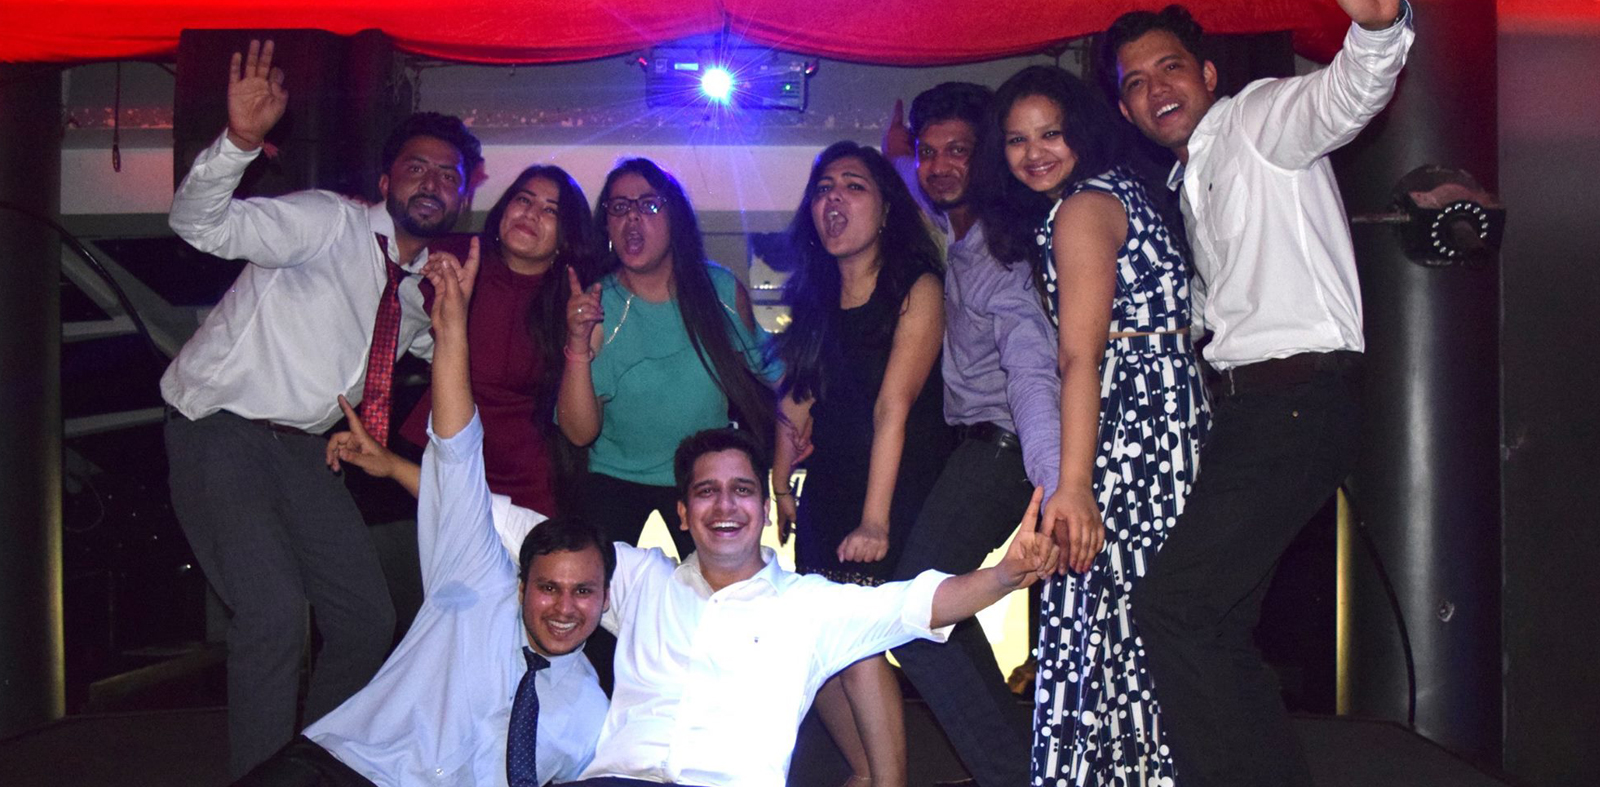 Annual party 2017